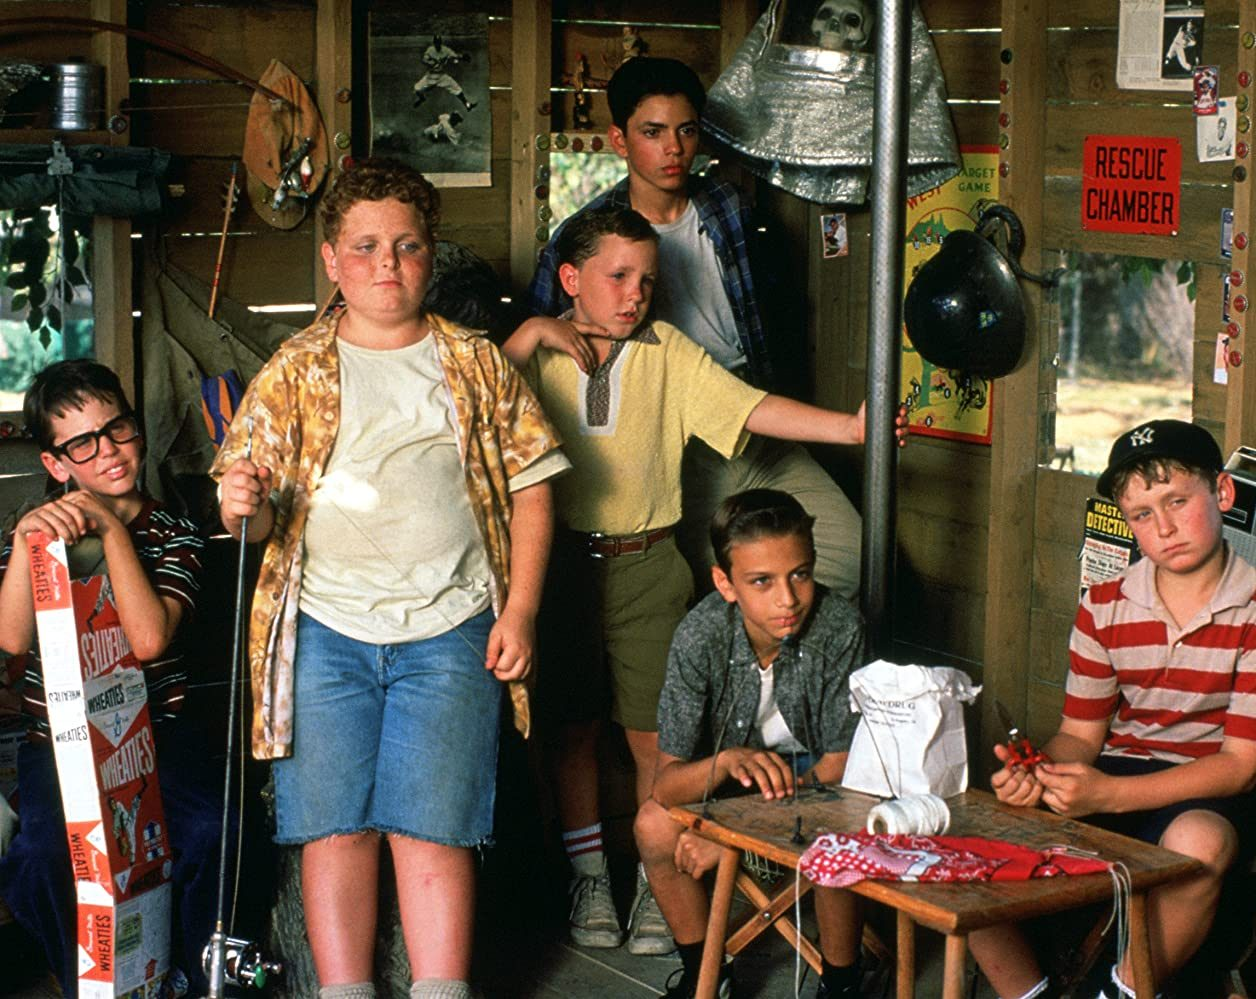 5 8 e1599559788519 20 Home Run-Hitting Facts About The 1993 Film The Sandlot